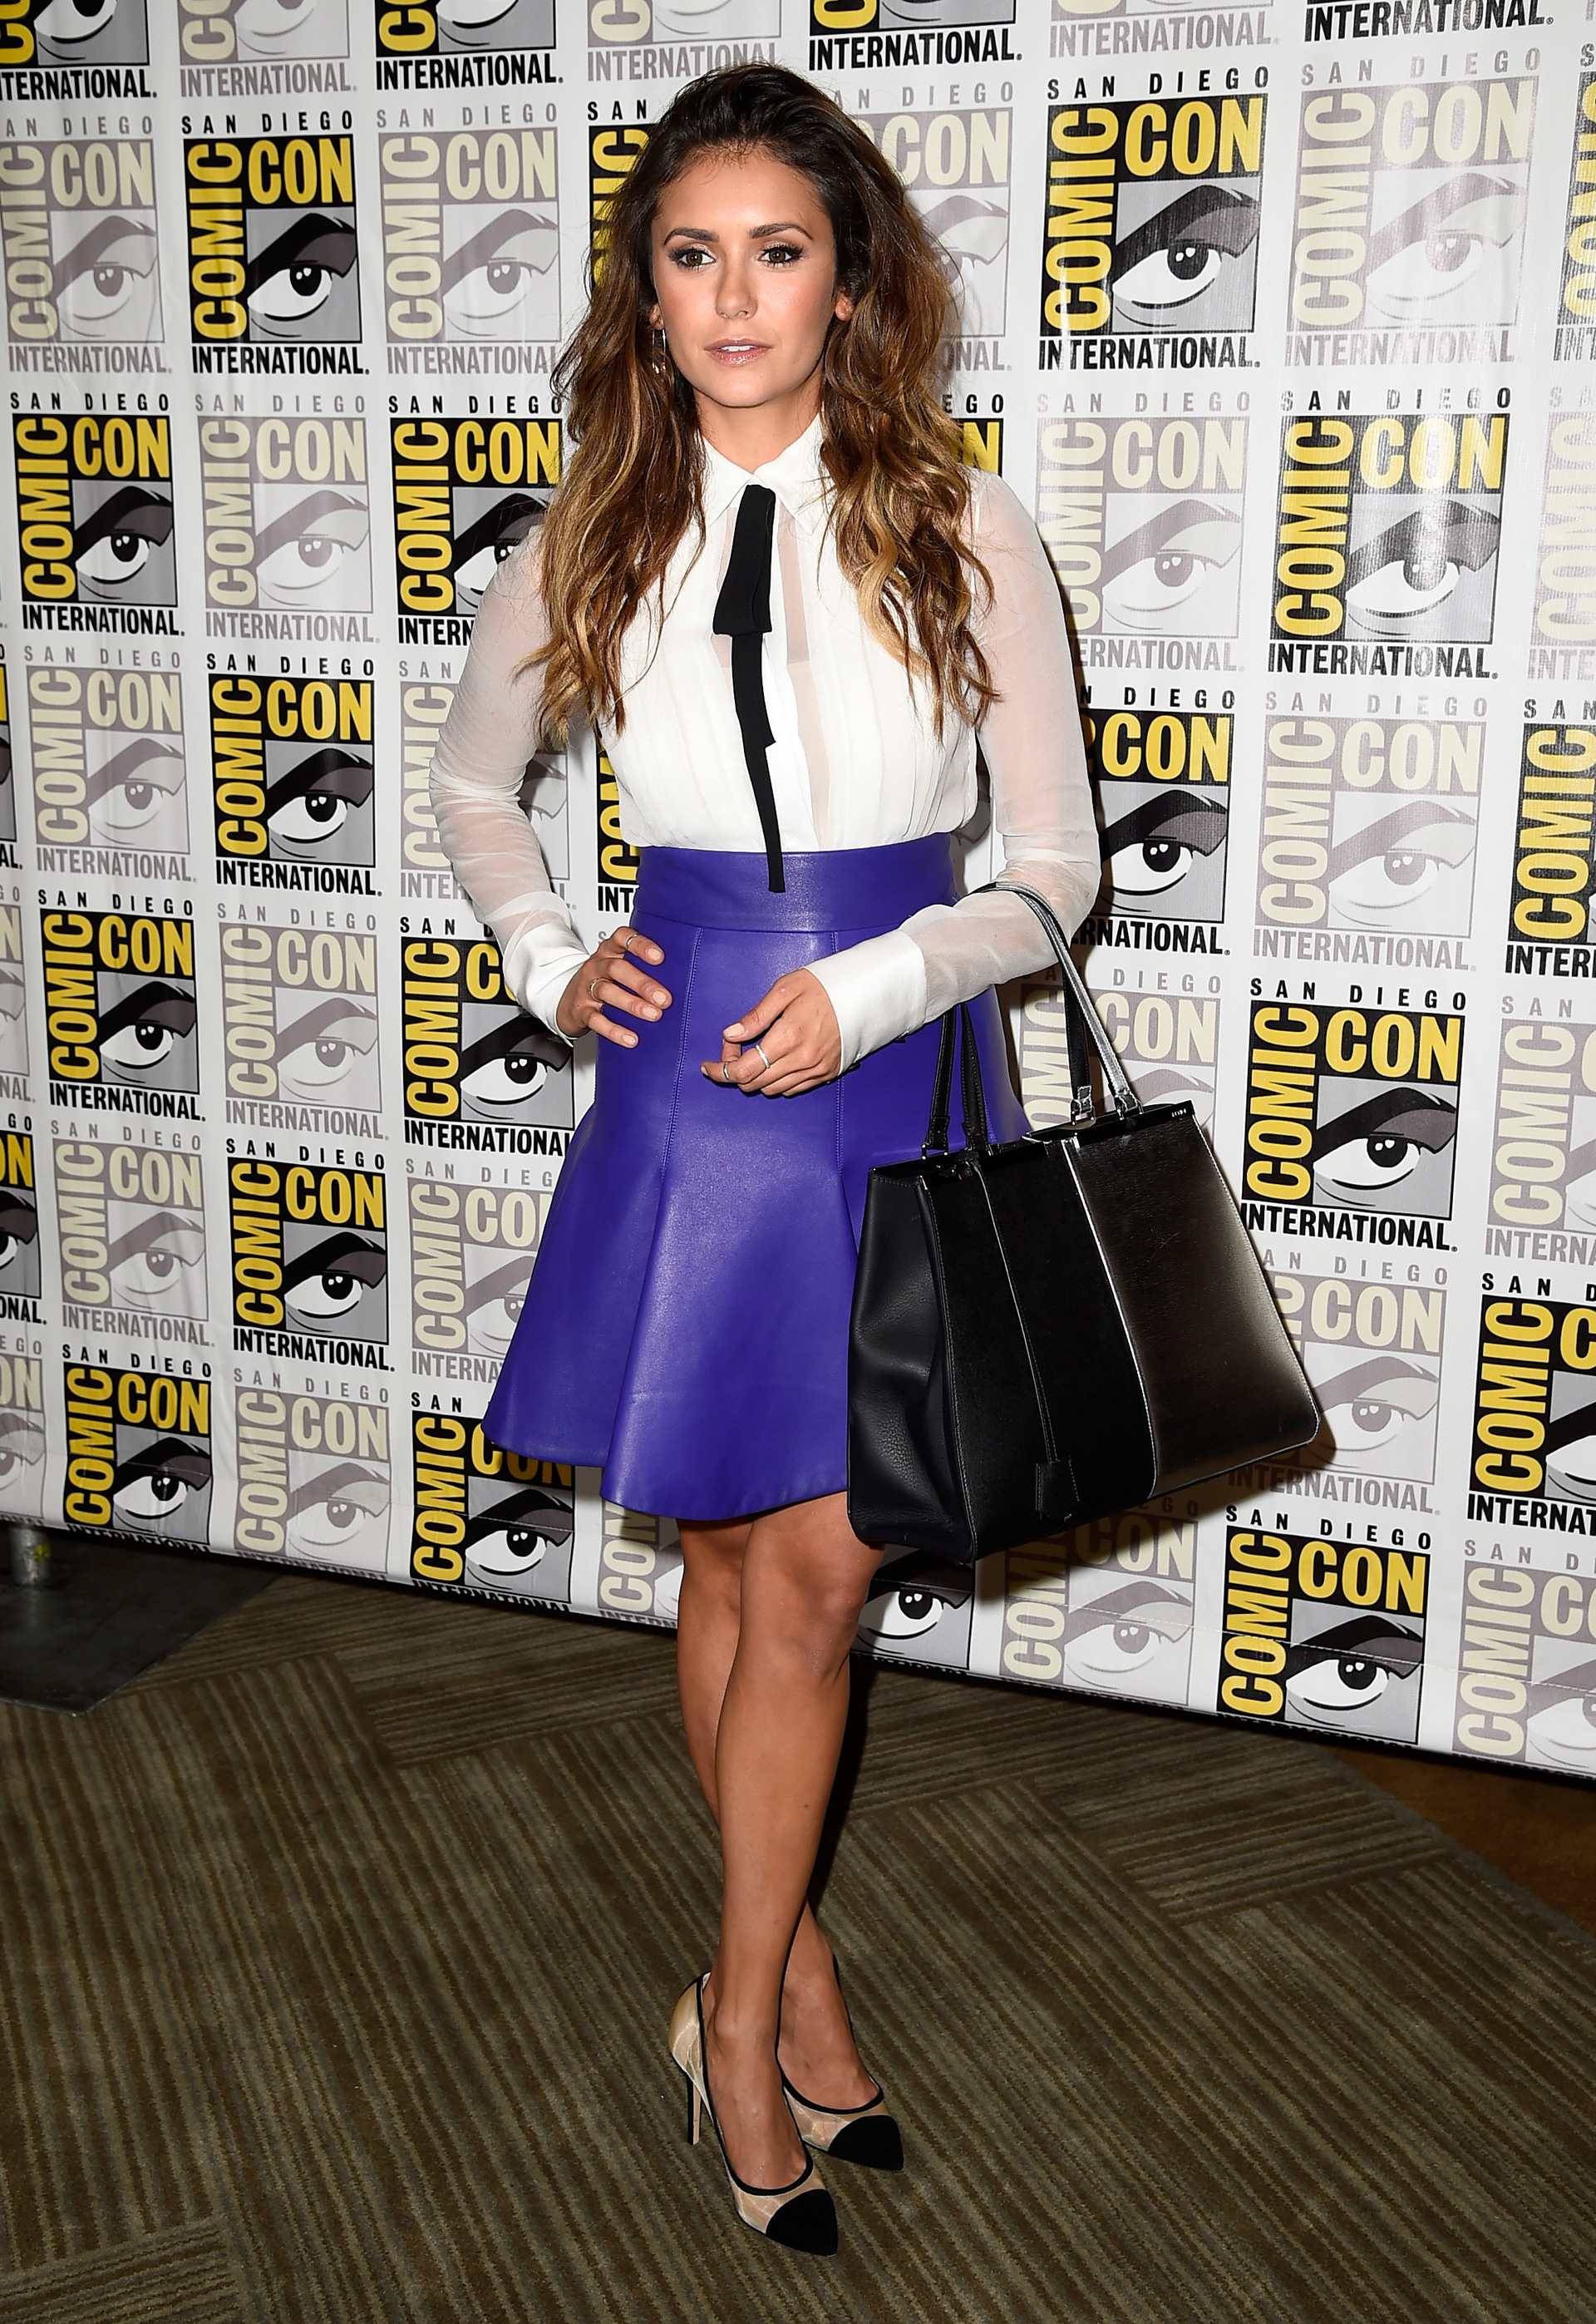 Nina Dobrev Lesson #4: Classic looks can look totally modern